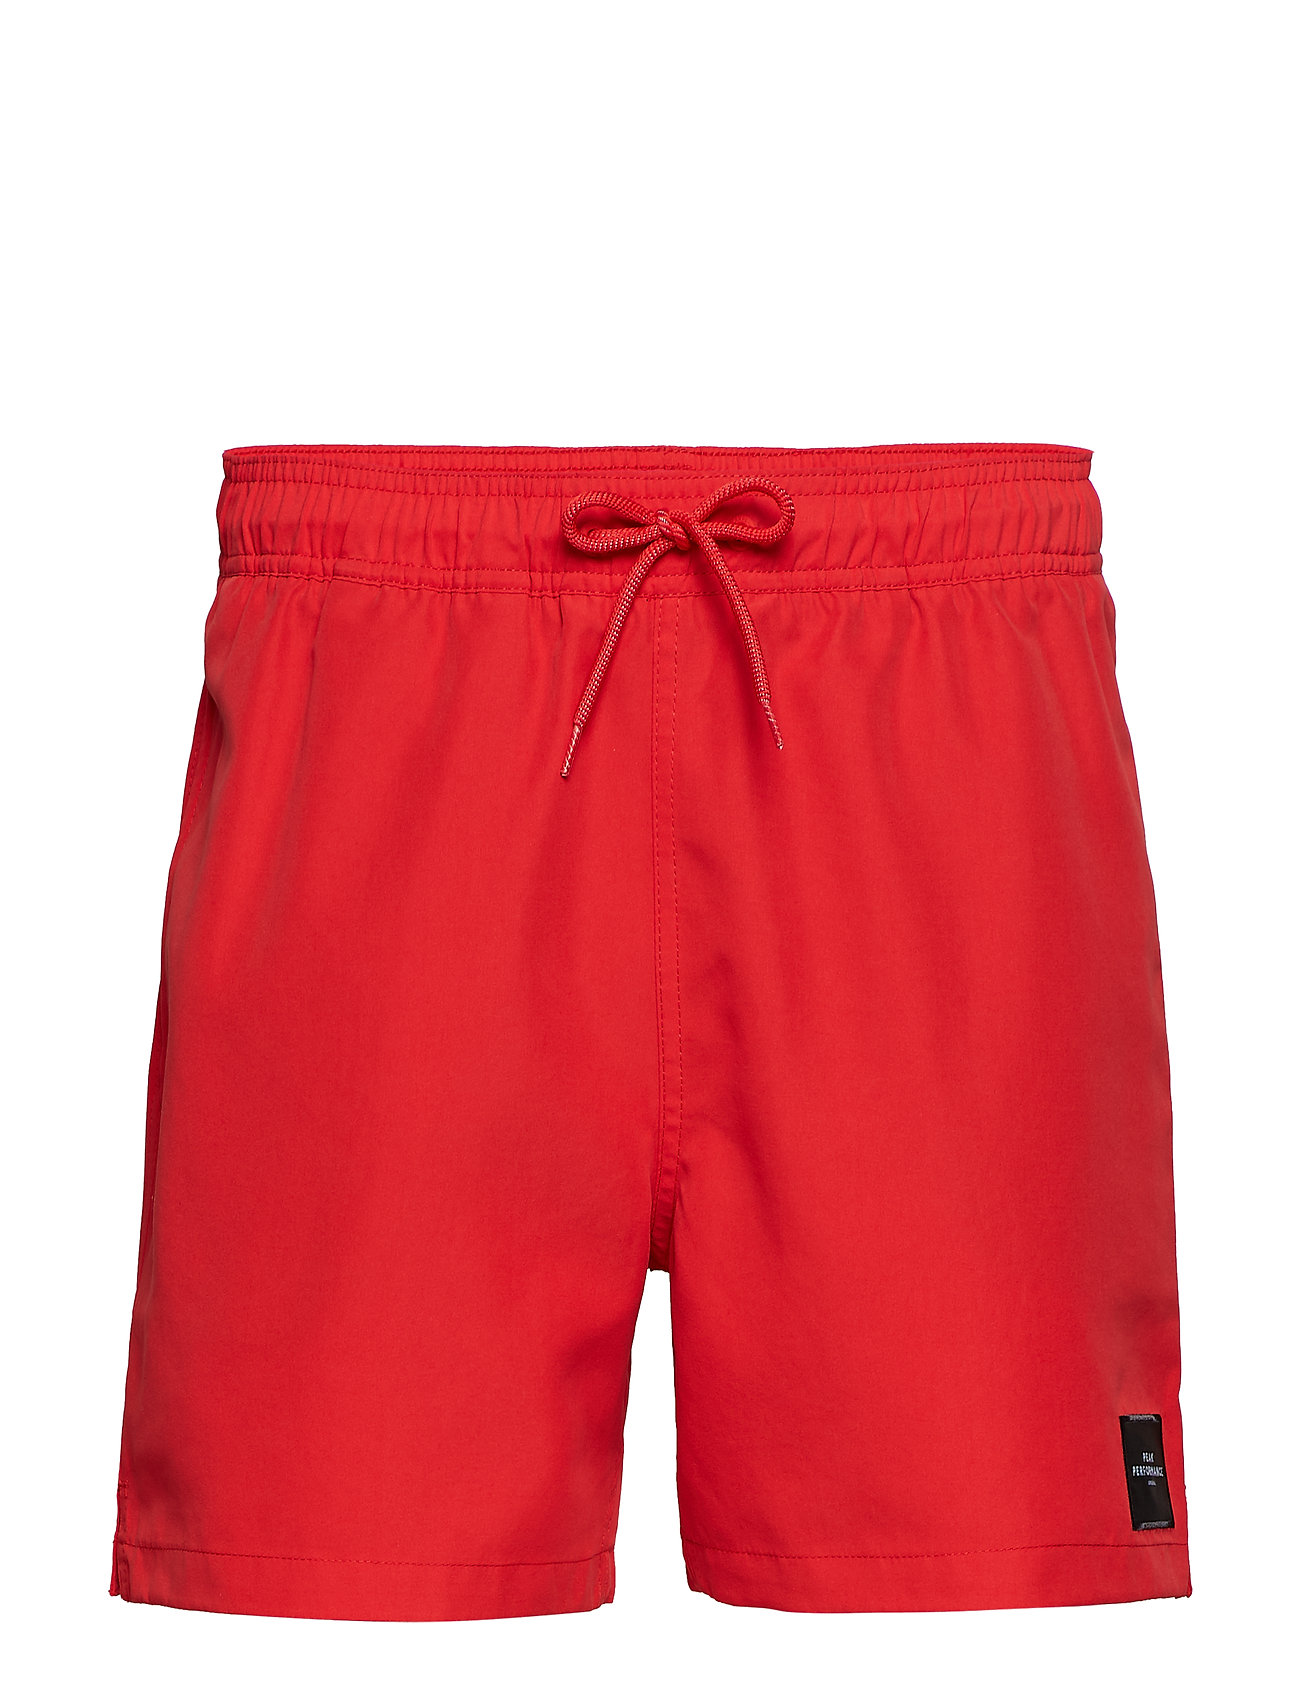 Peak Performance JIM SHORTS - CHINESE RED